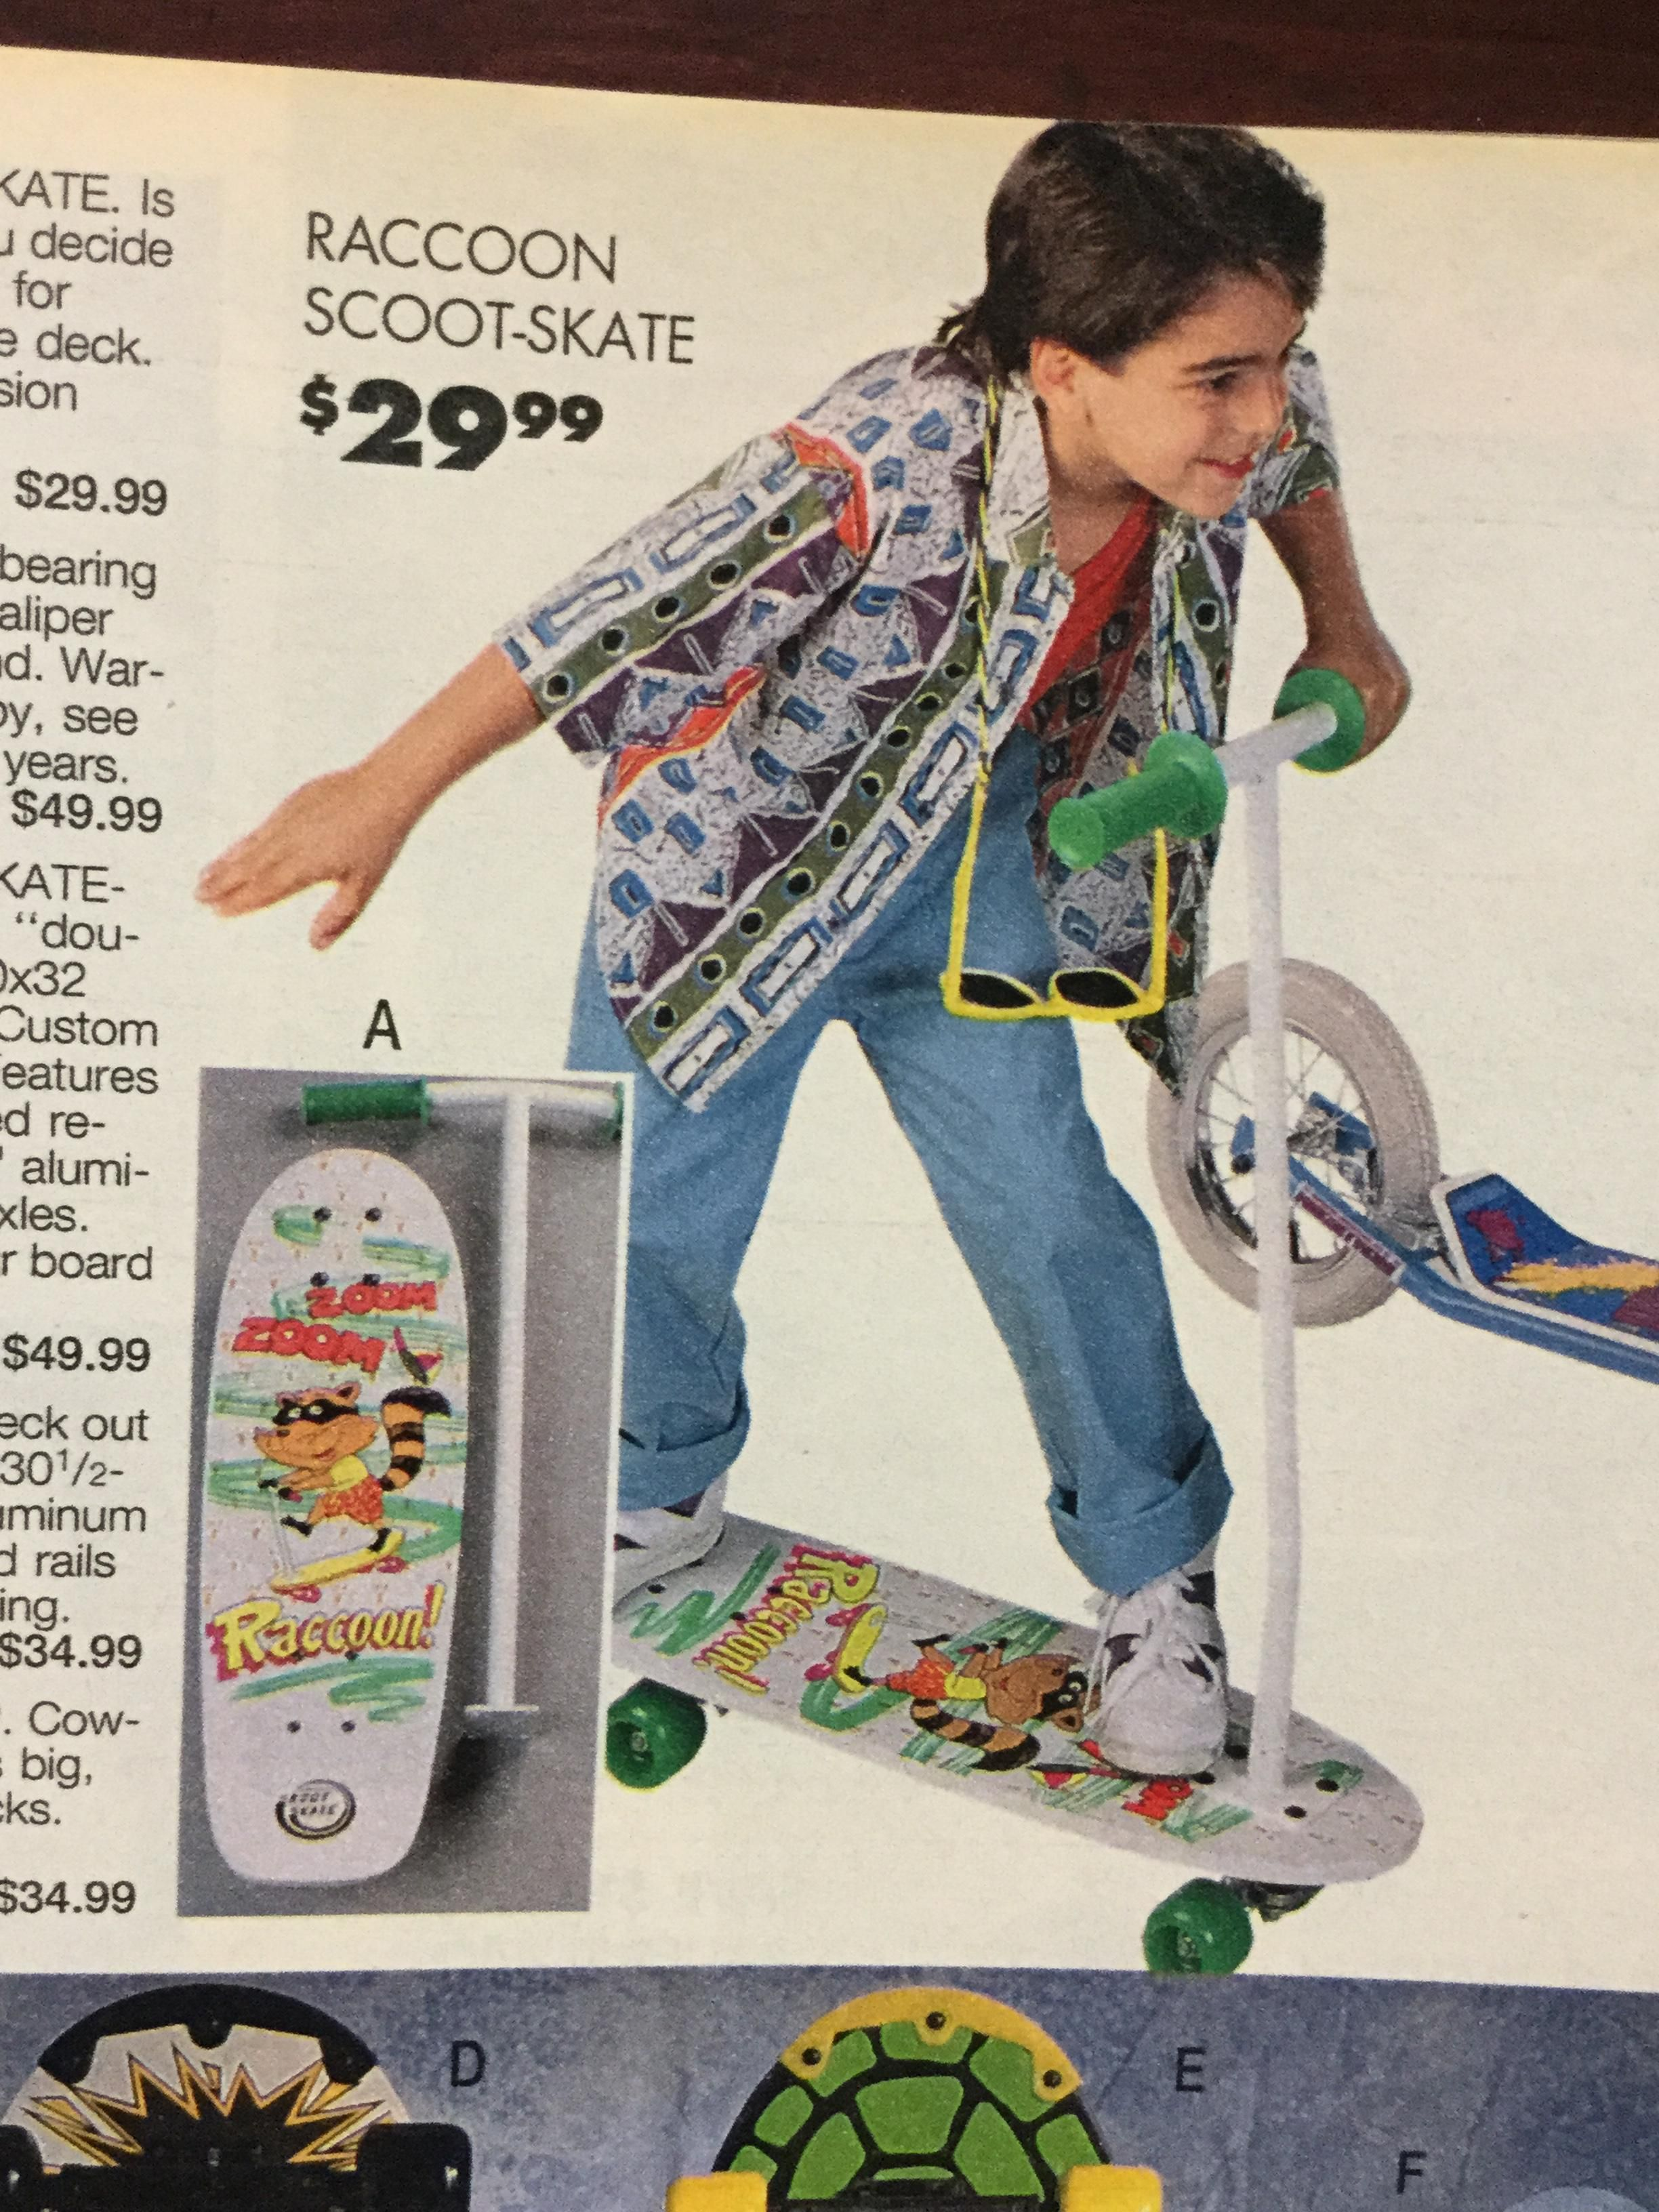 Sears Wish Book Scooter